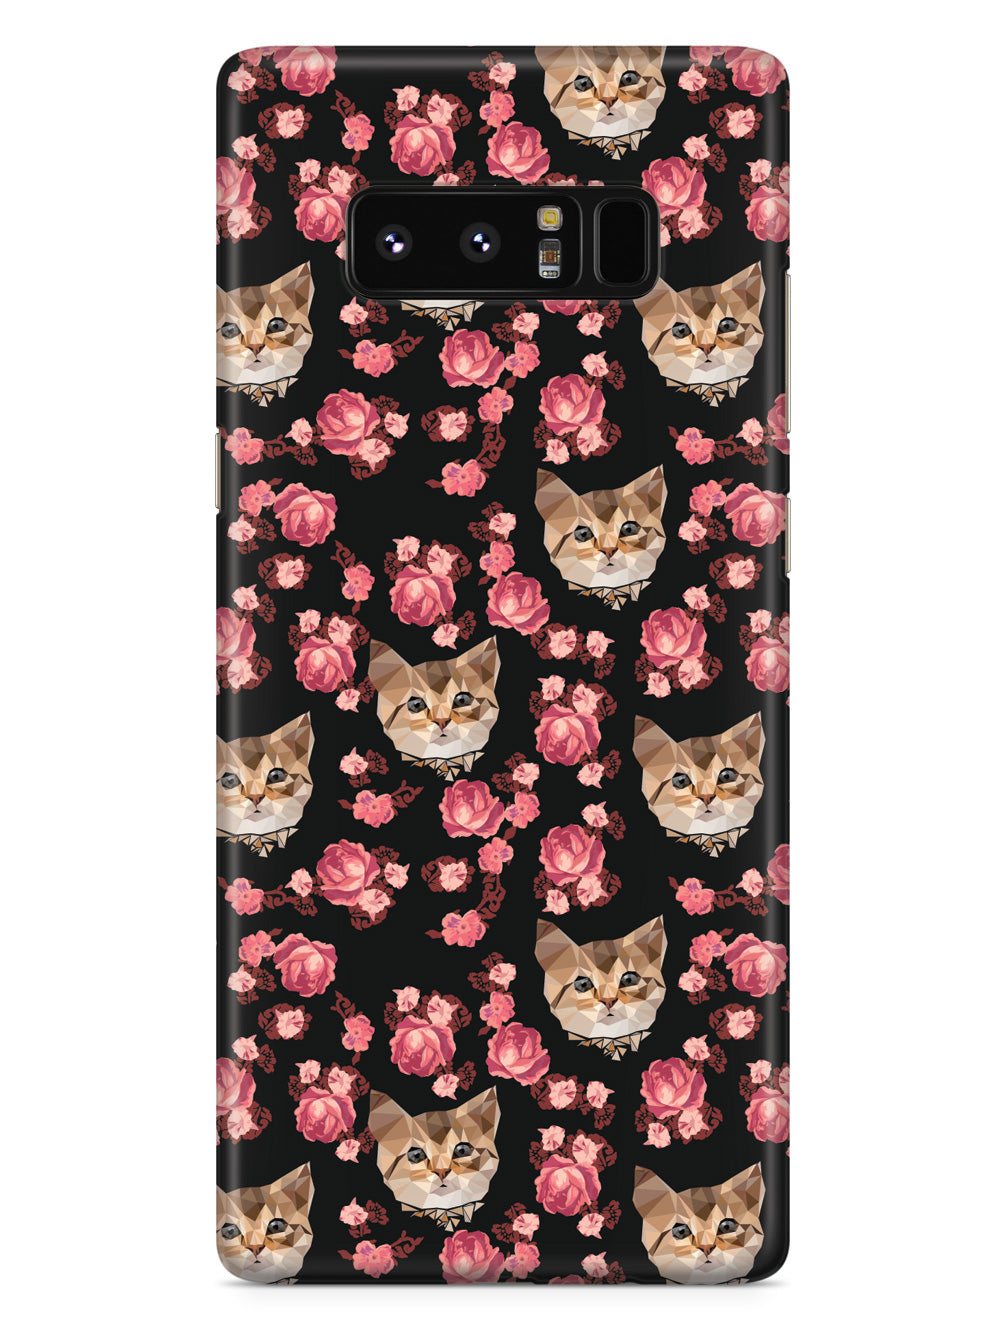 Roses and Kittens Pattern - Black Case